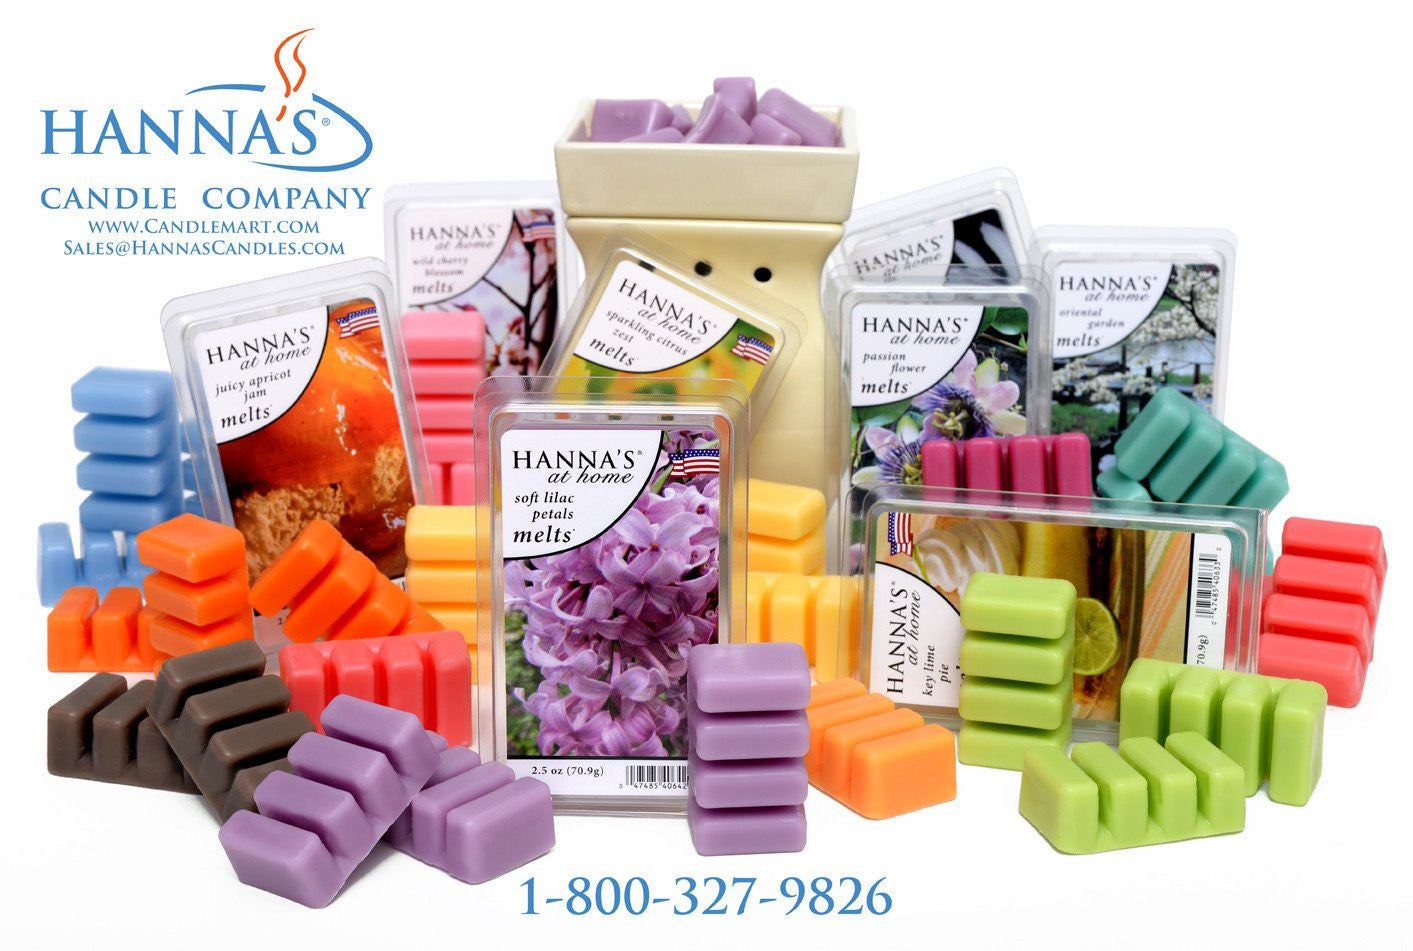 White Gardenia Blossom Scented Wax Melts - Candlemart.com